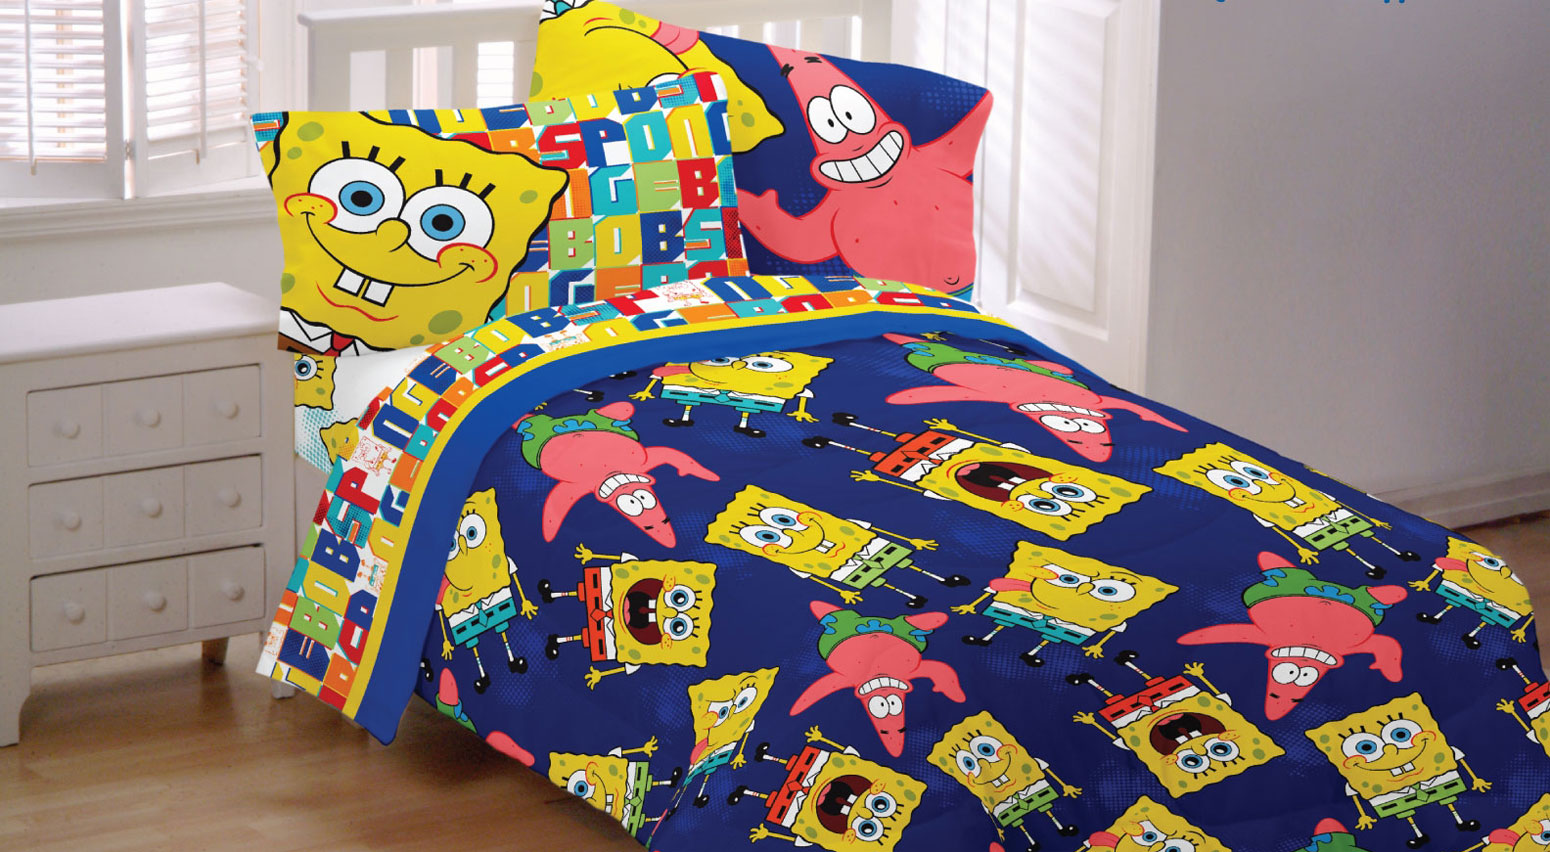 Spongebob Squarepants Bed Sheet Set Scribble Sponge